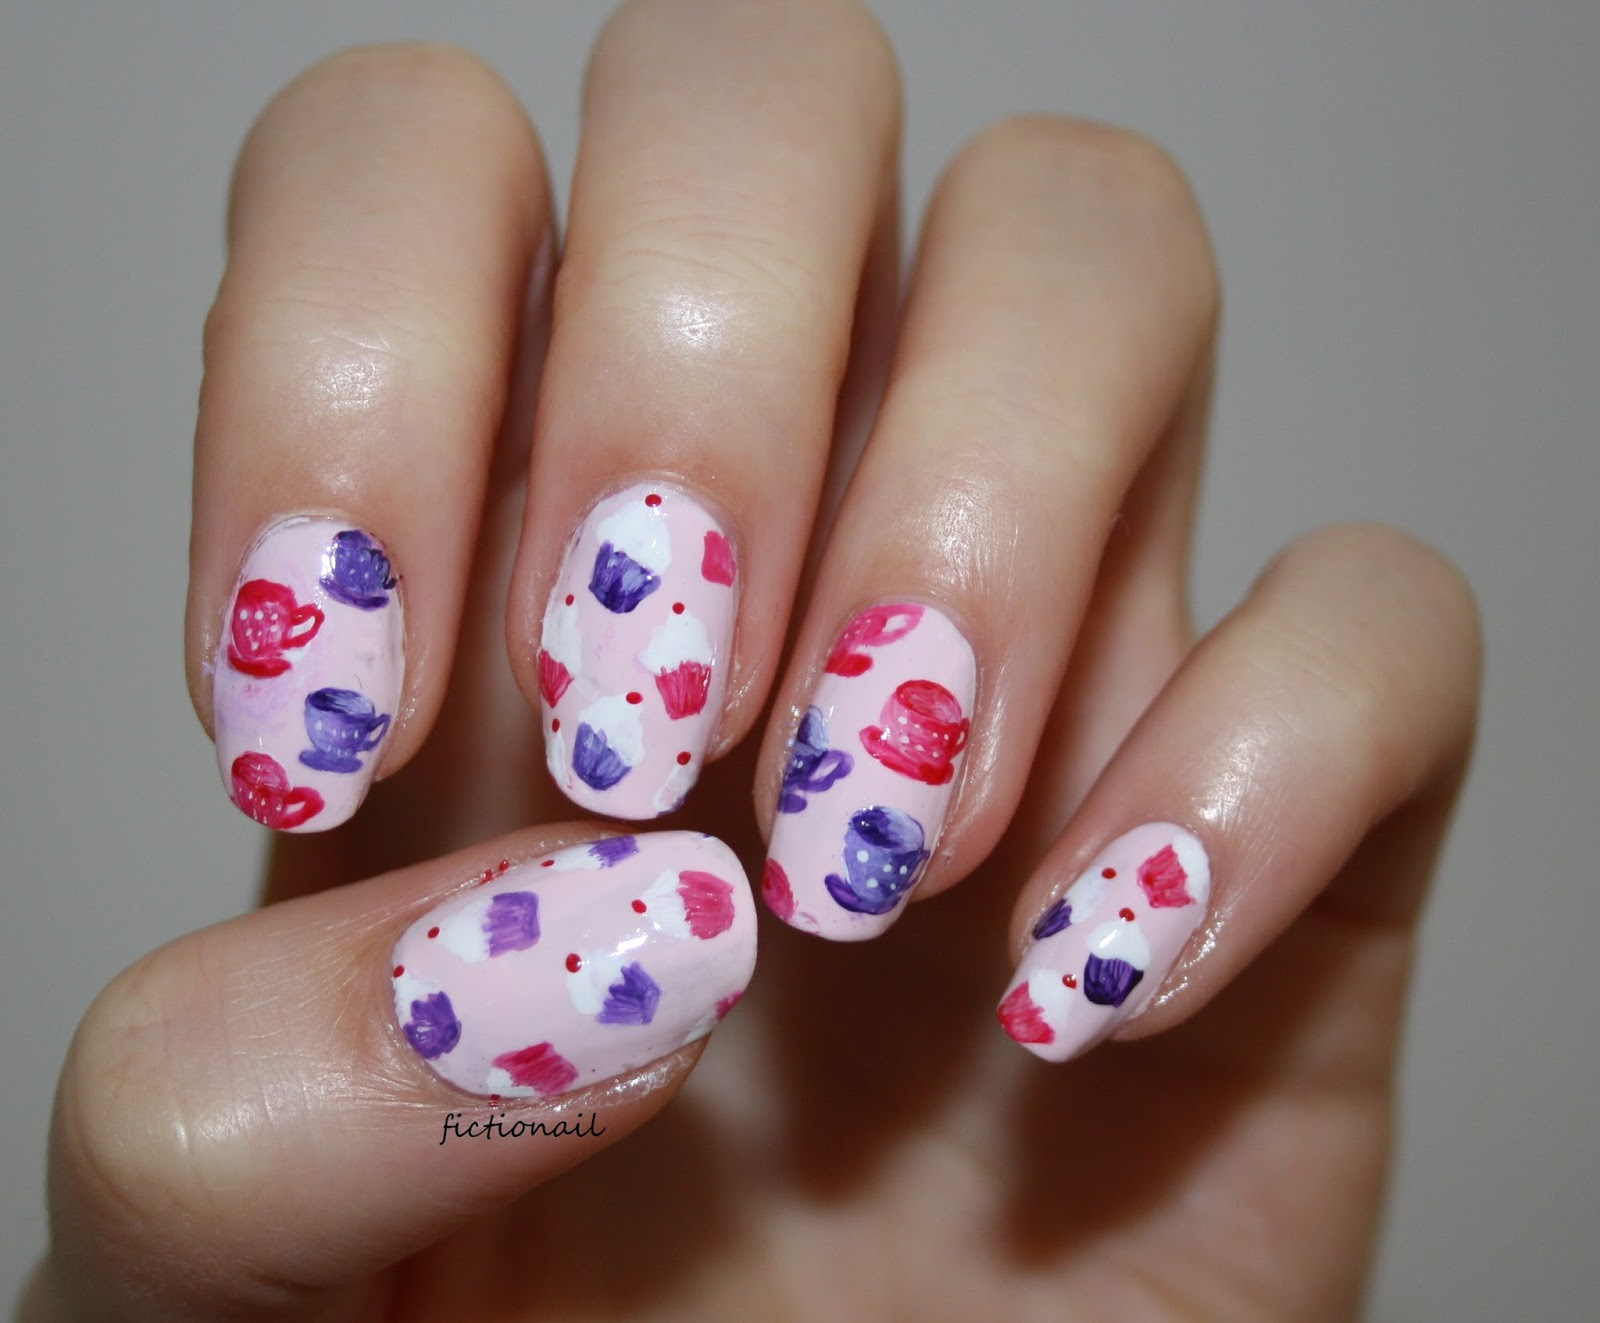 Cupcake and Teacup Nails